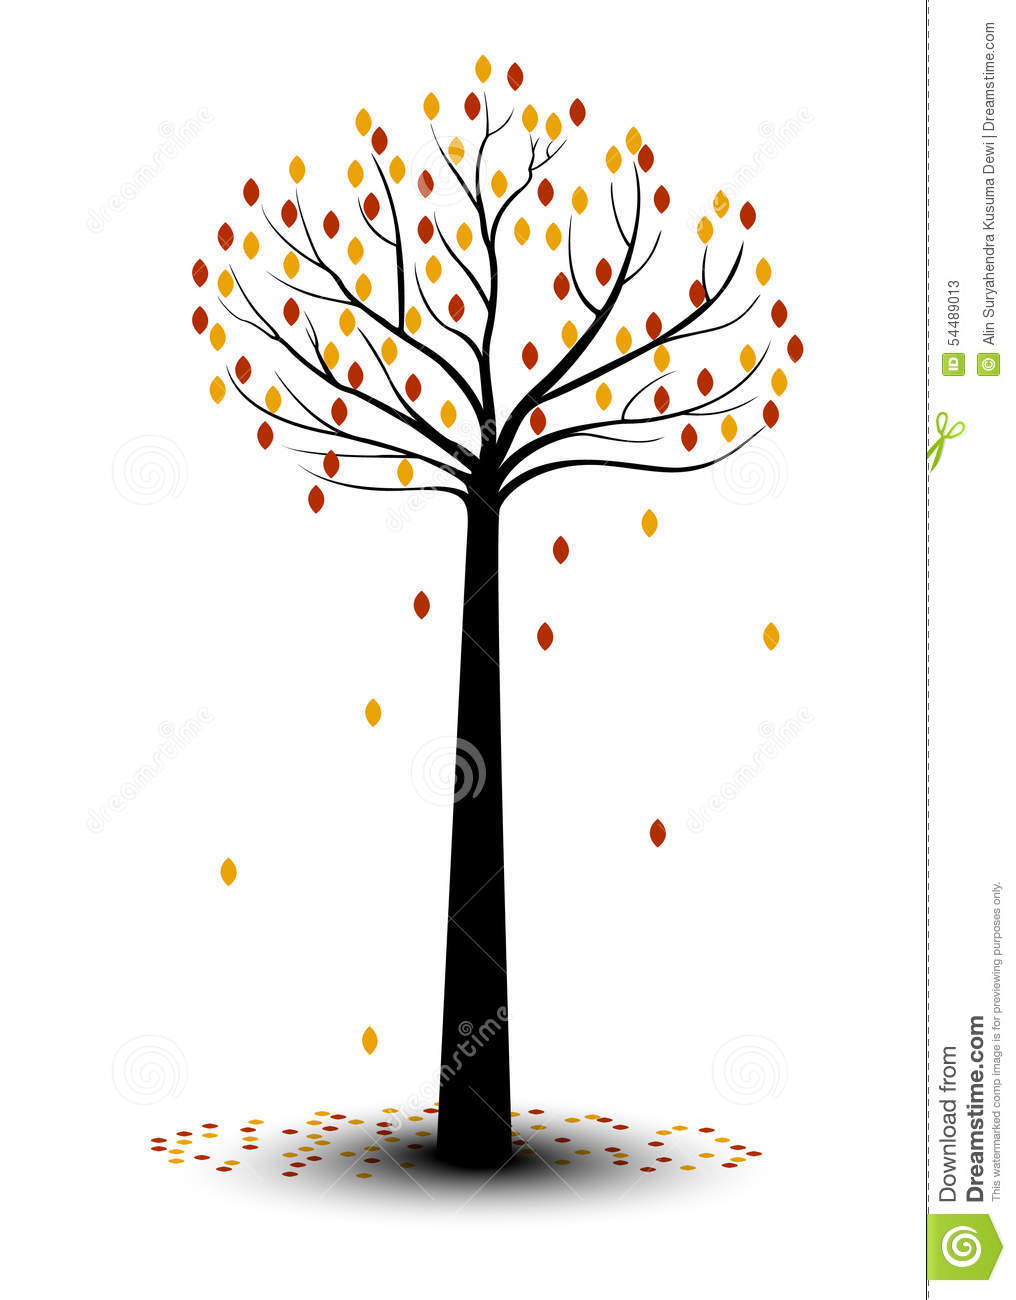 Decorative Autumn Tree Silhouette With Brown Leaves Stock Vector ...